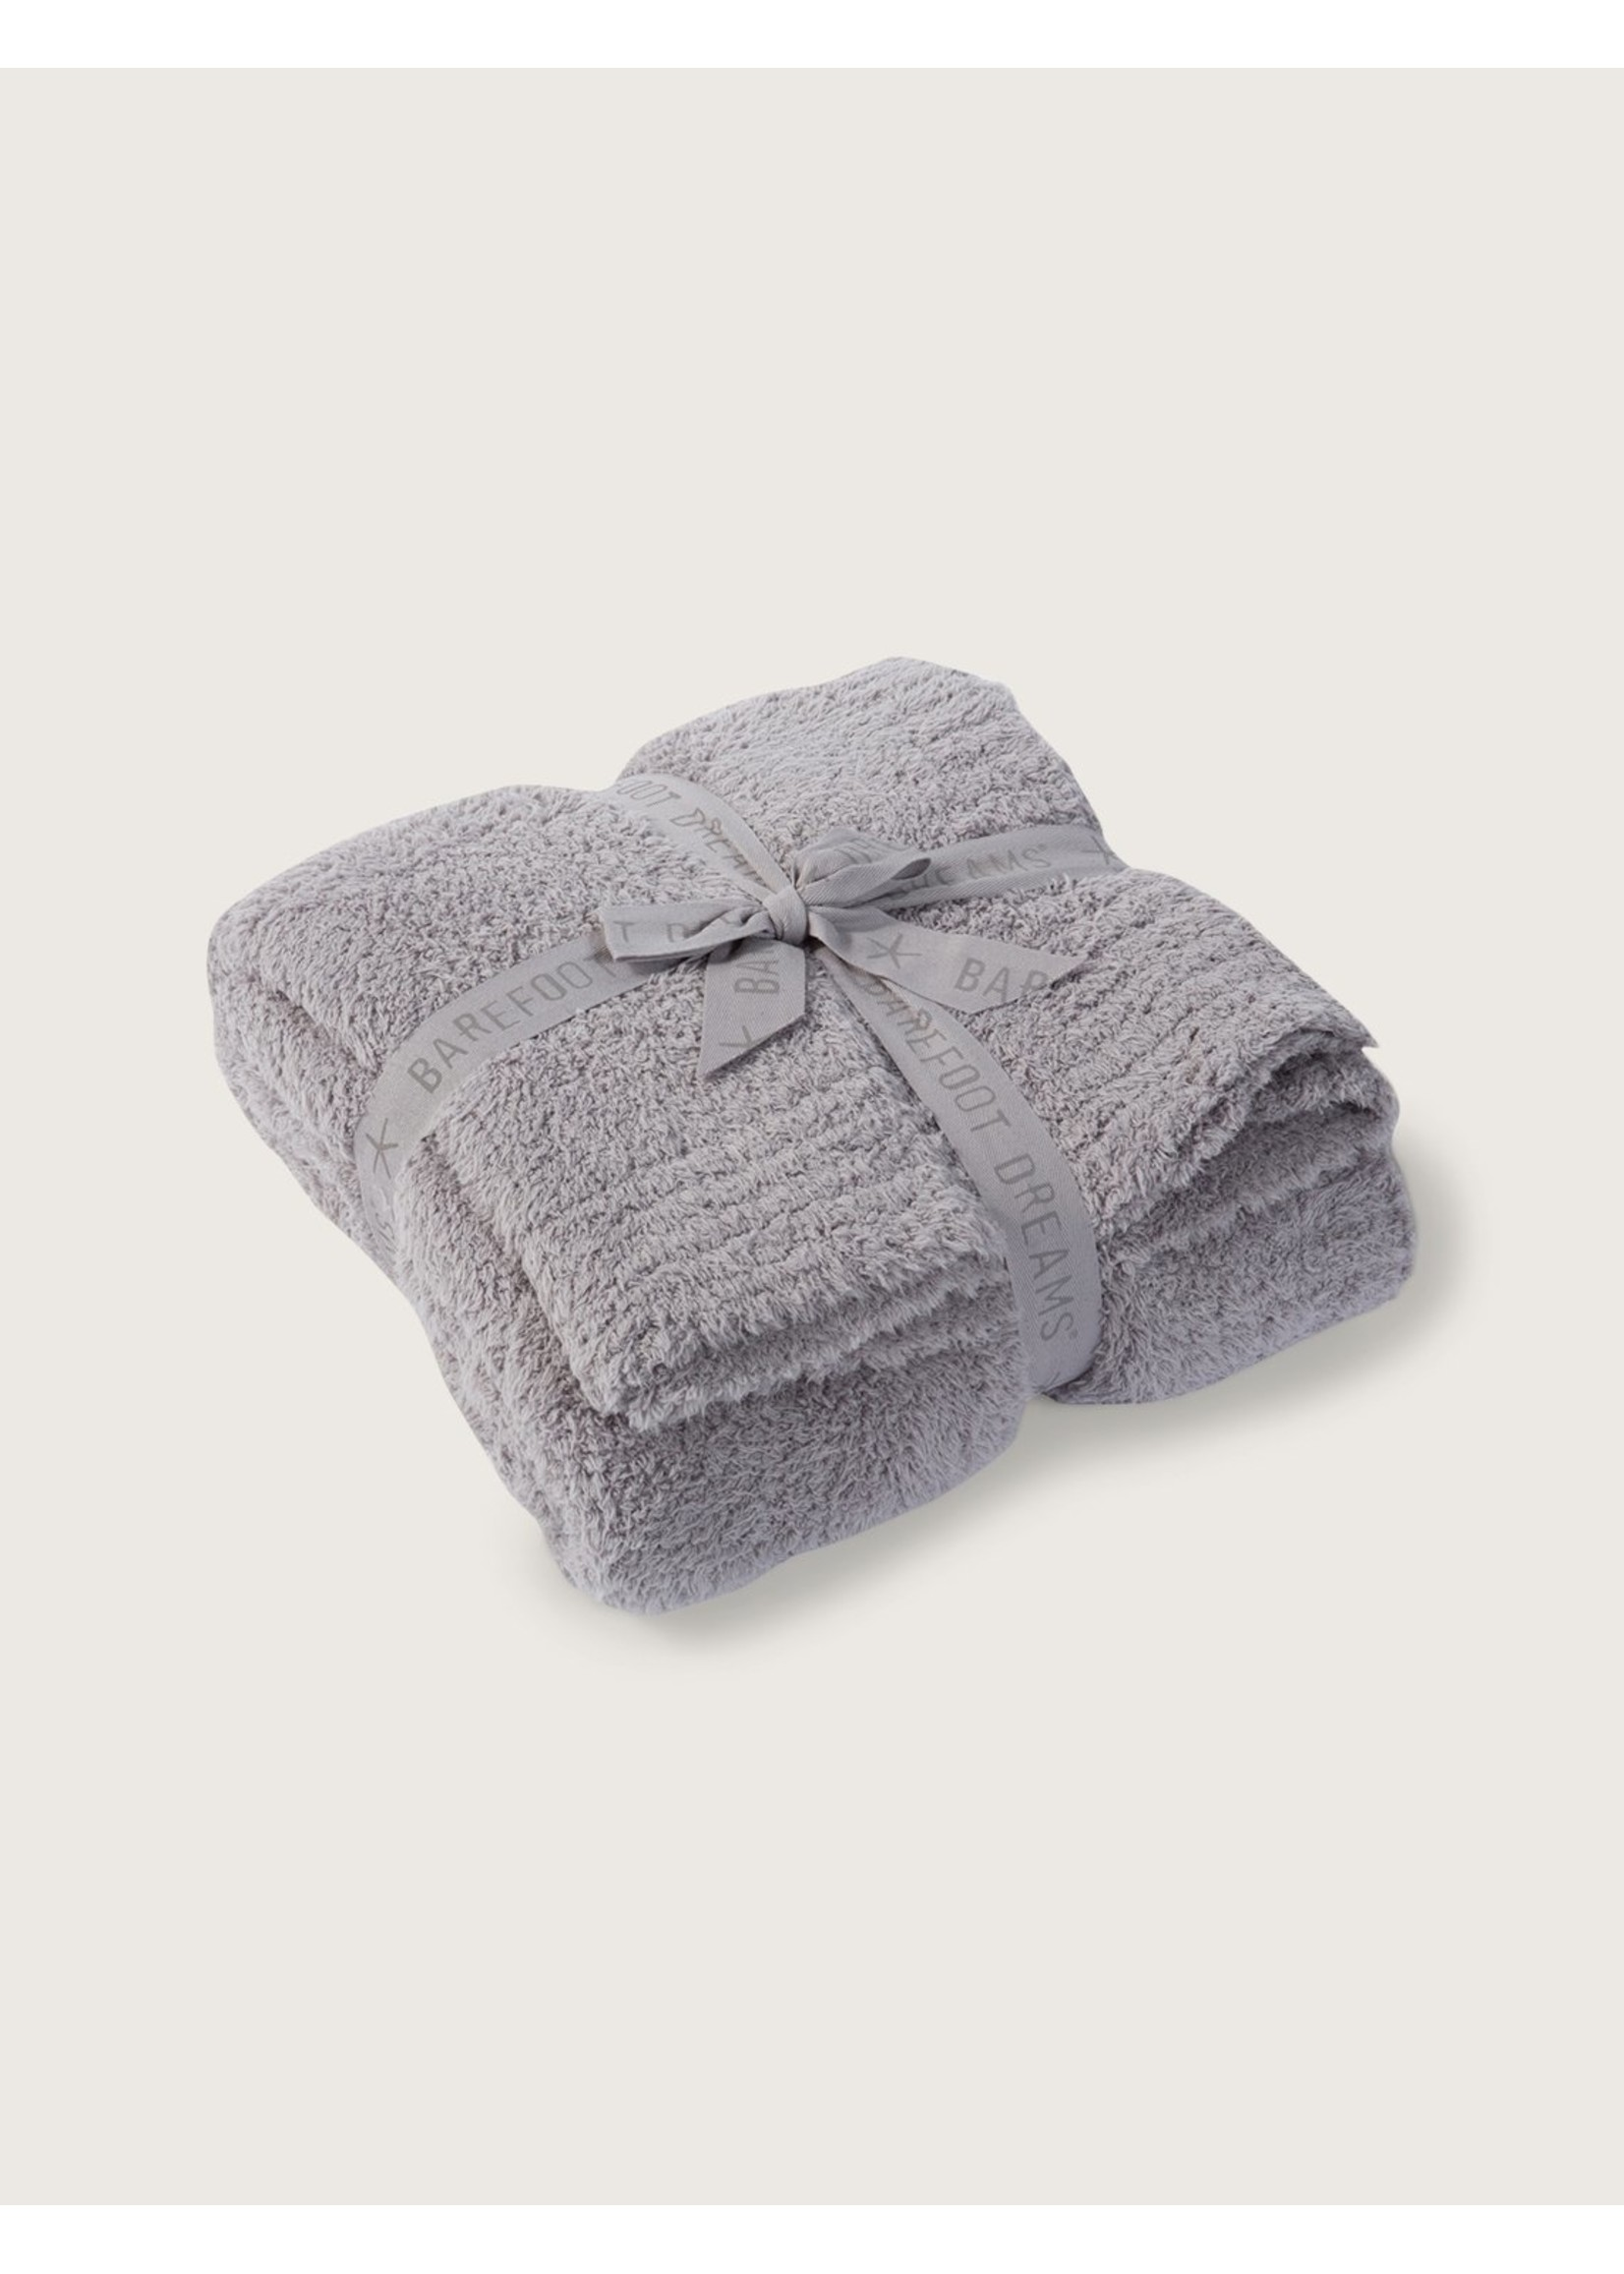 Barefoot Dreams Barefoot Dreams Cozychic Throw